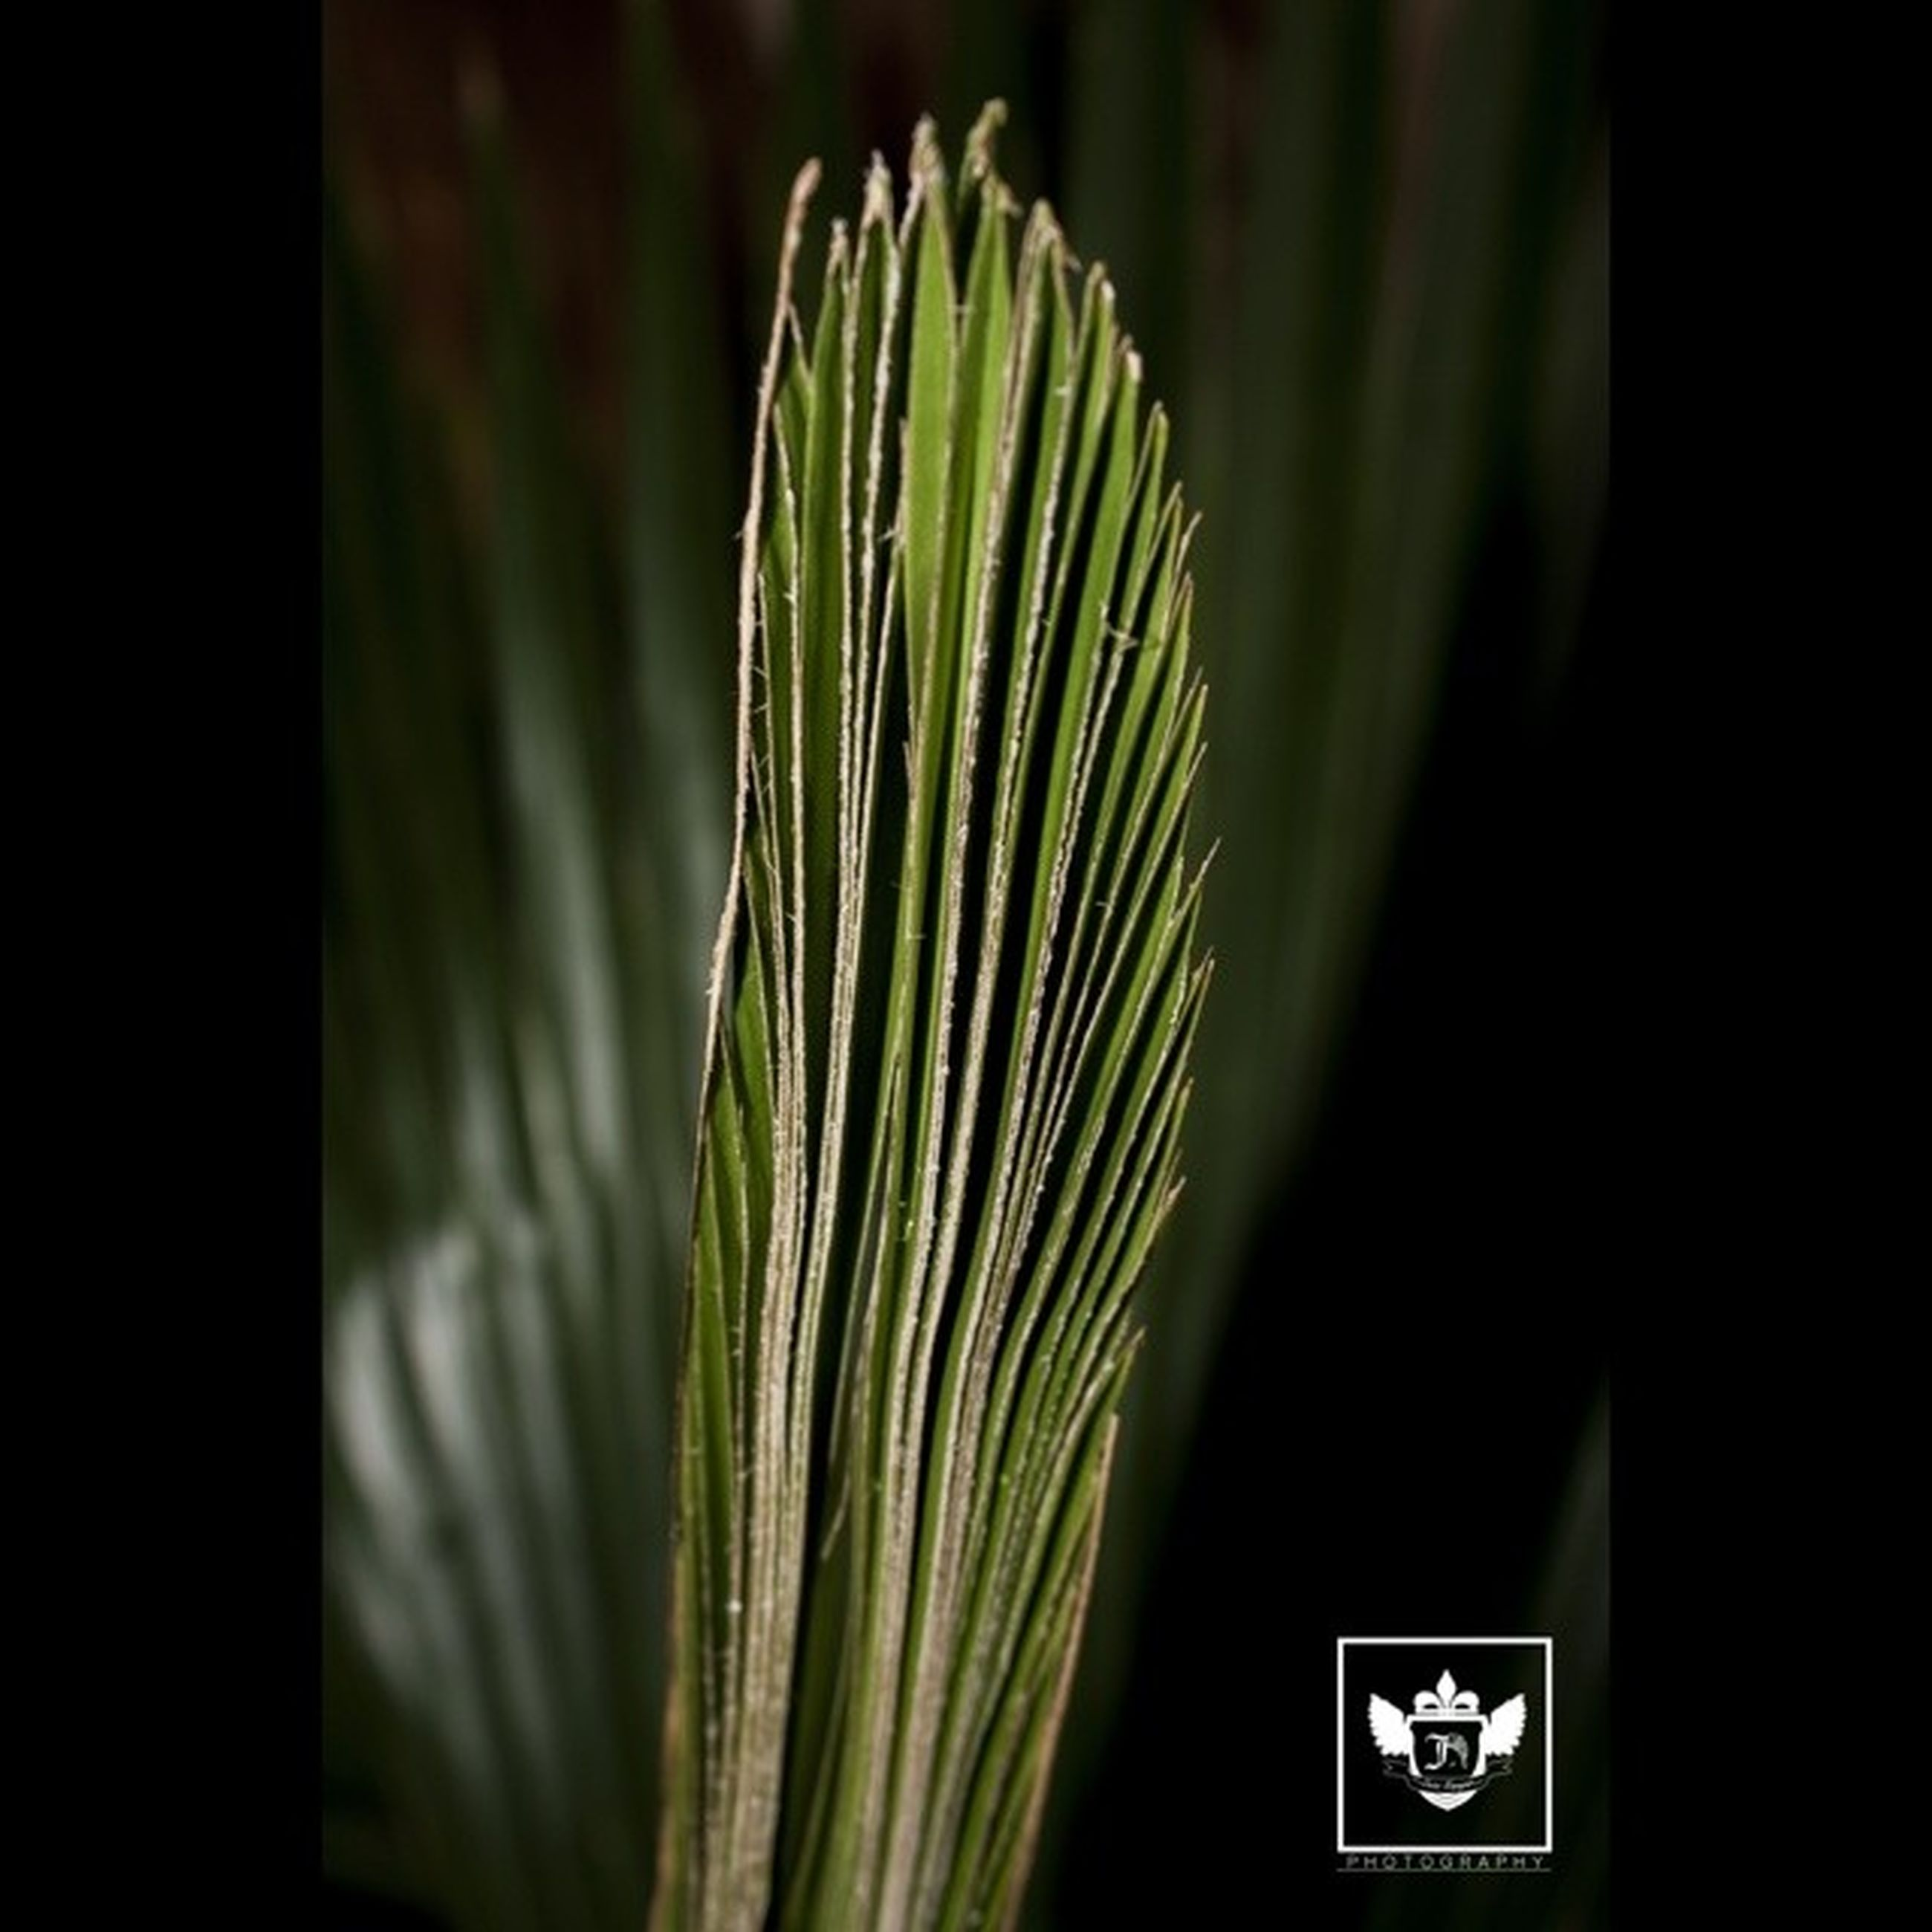 green color, growth, plant, close-up, leaf, green, indoors, nature, text, no people, focus on foreground, potted plant, communication, studio shot, dark, beauty in nature, copy space, day, selective focus, black background